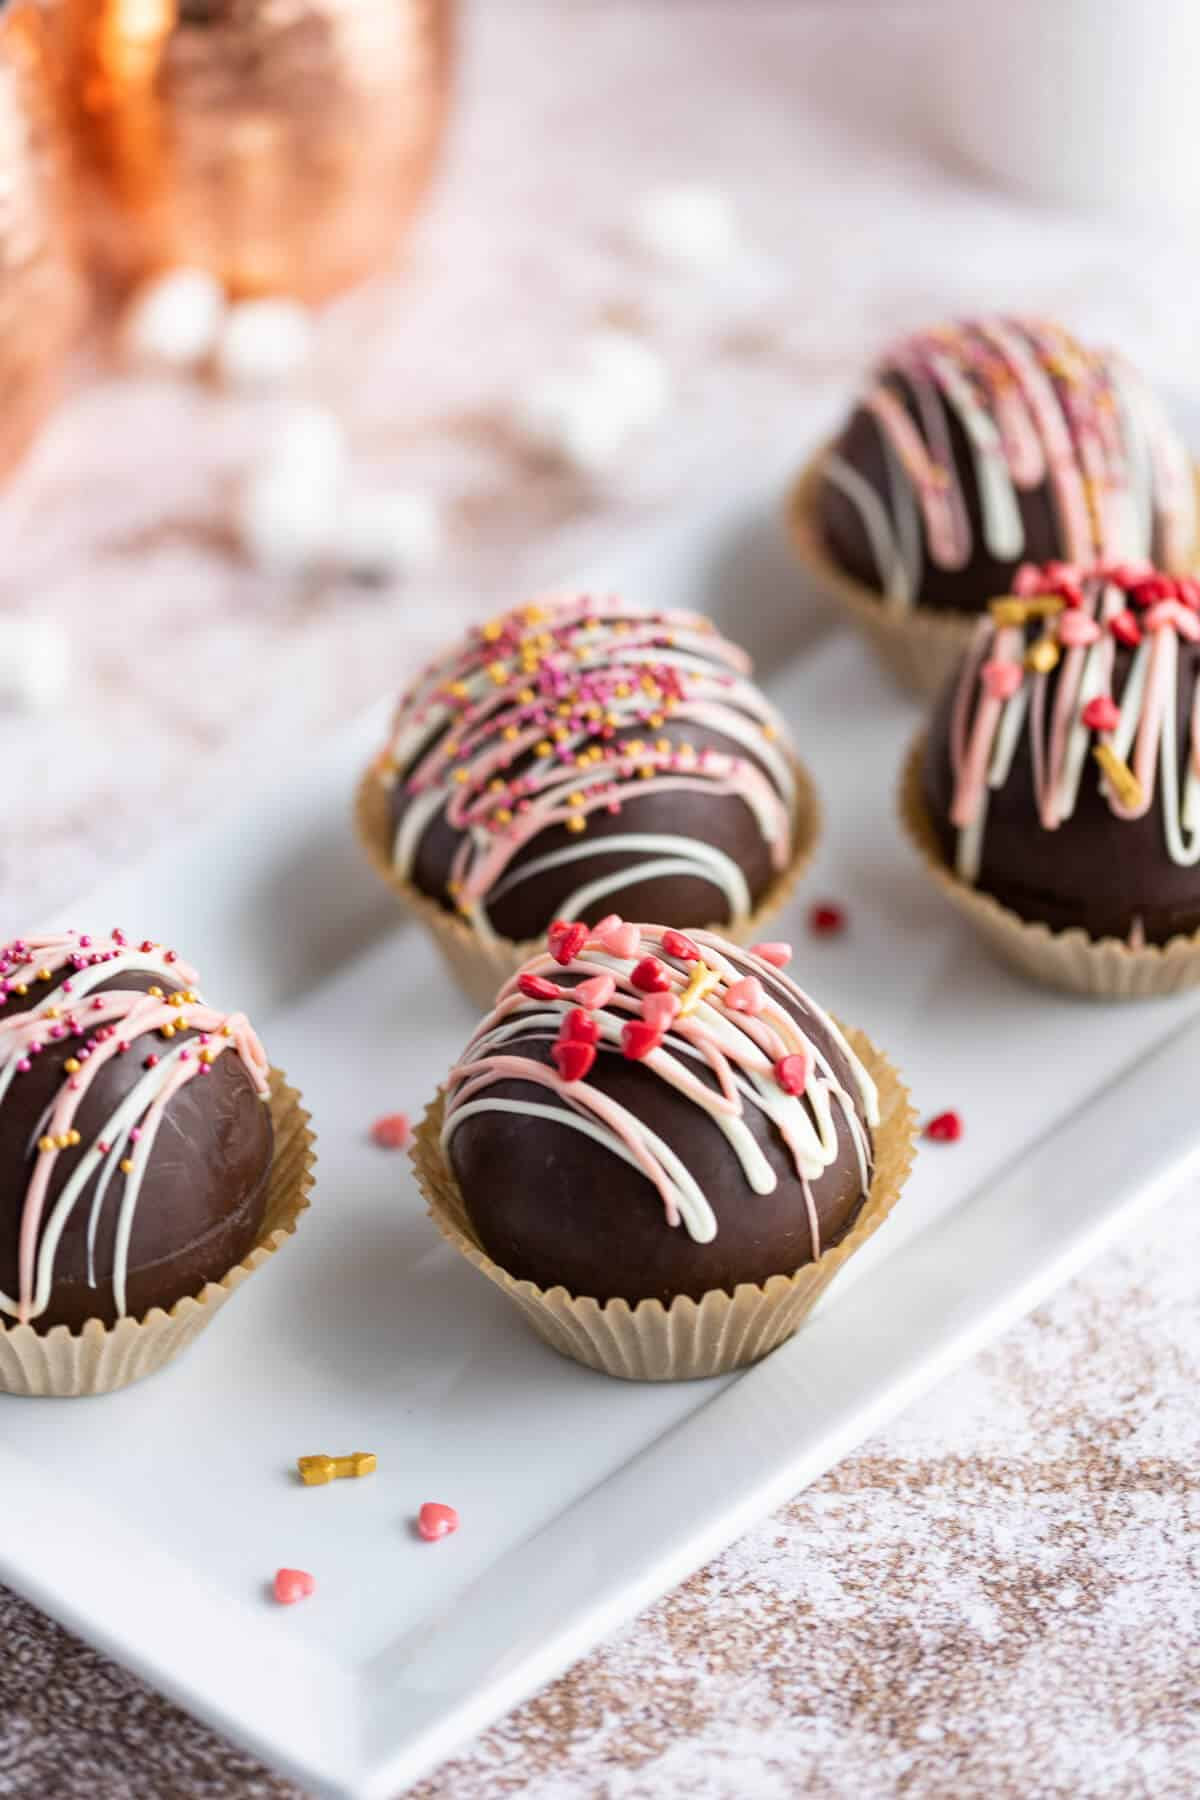 a platter of hot chocolate bombs decorated with pink and white chocolate drizzle and valentine sprinkles